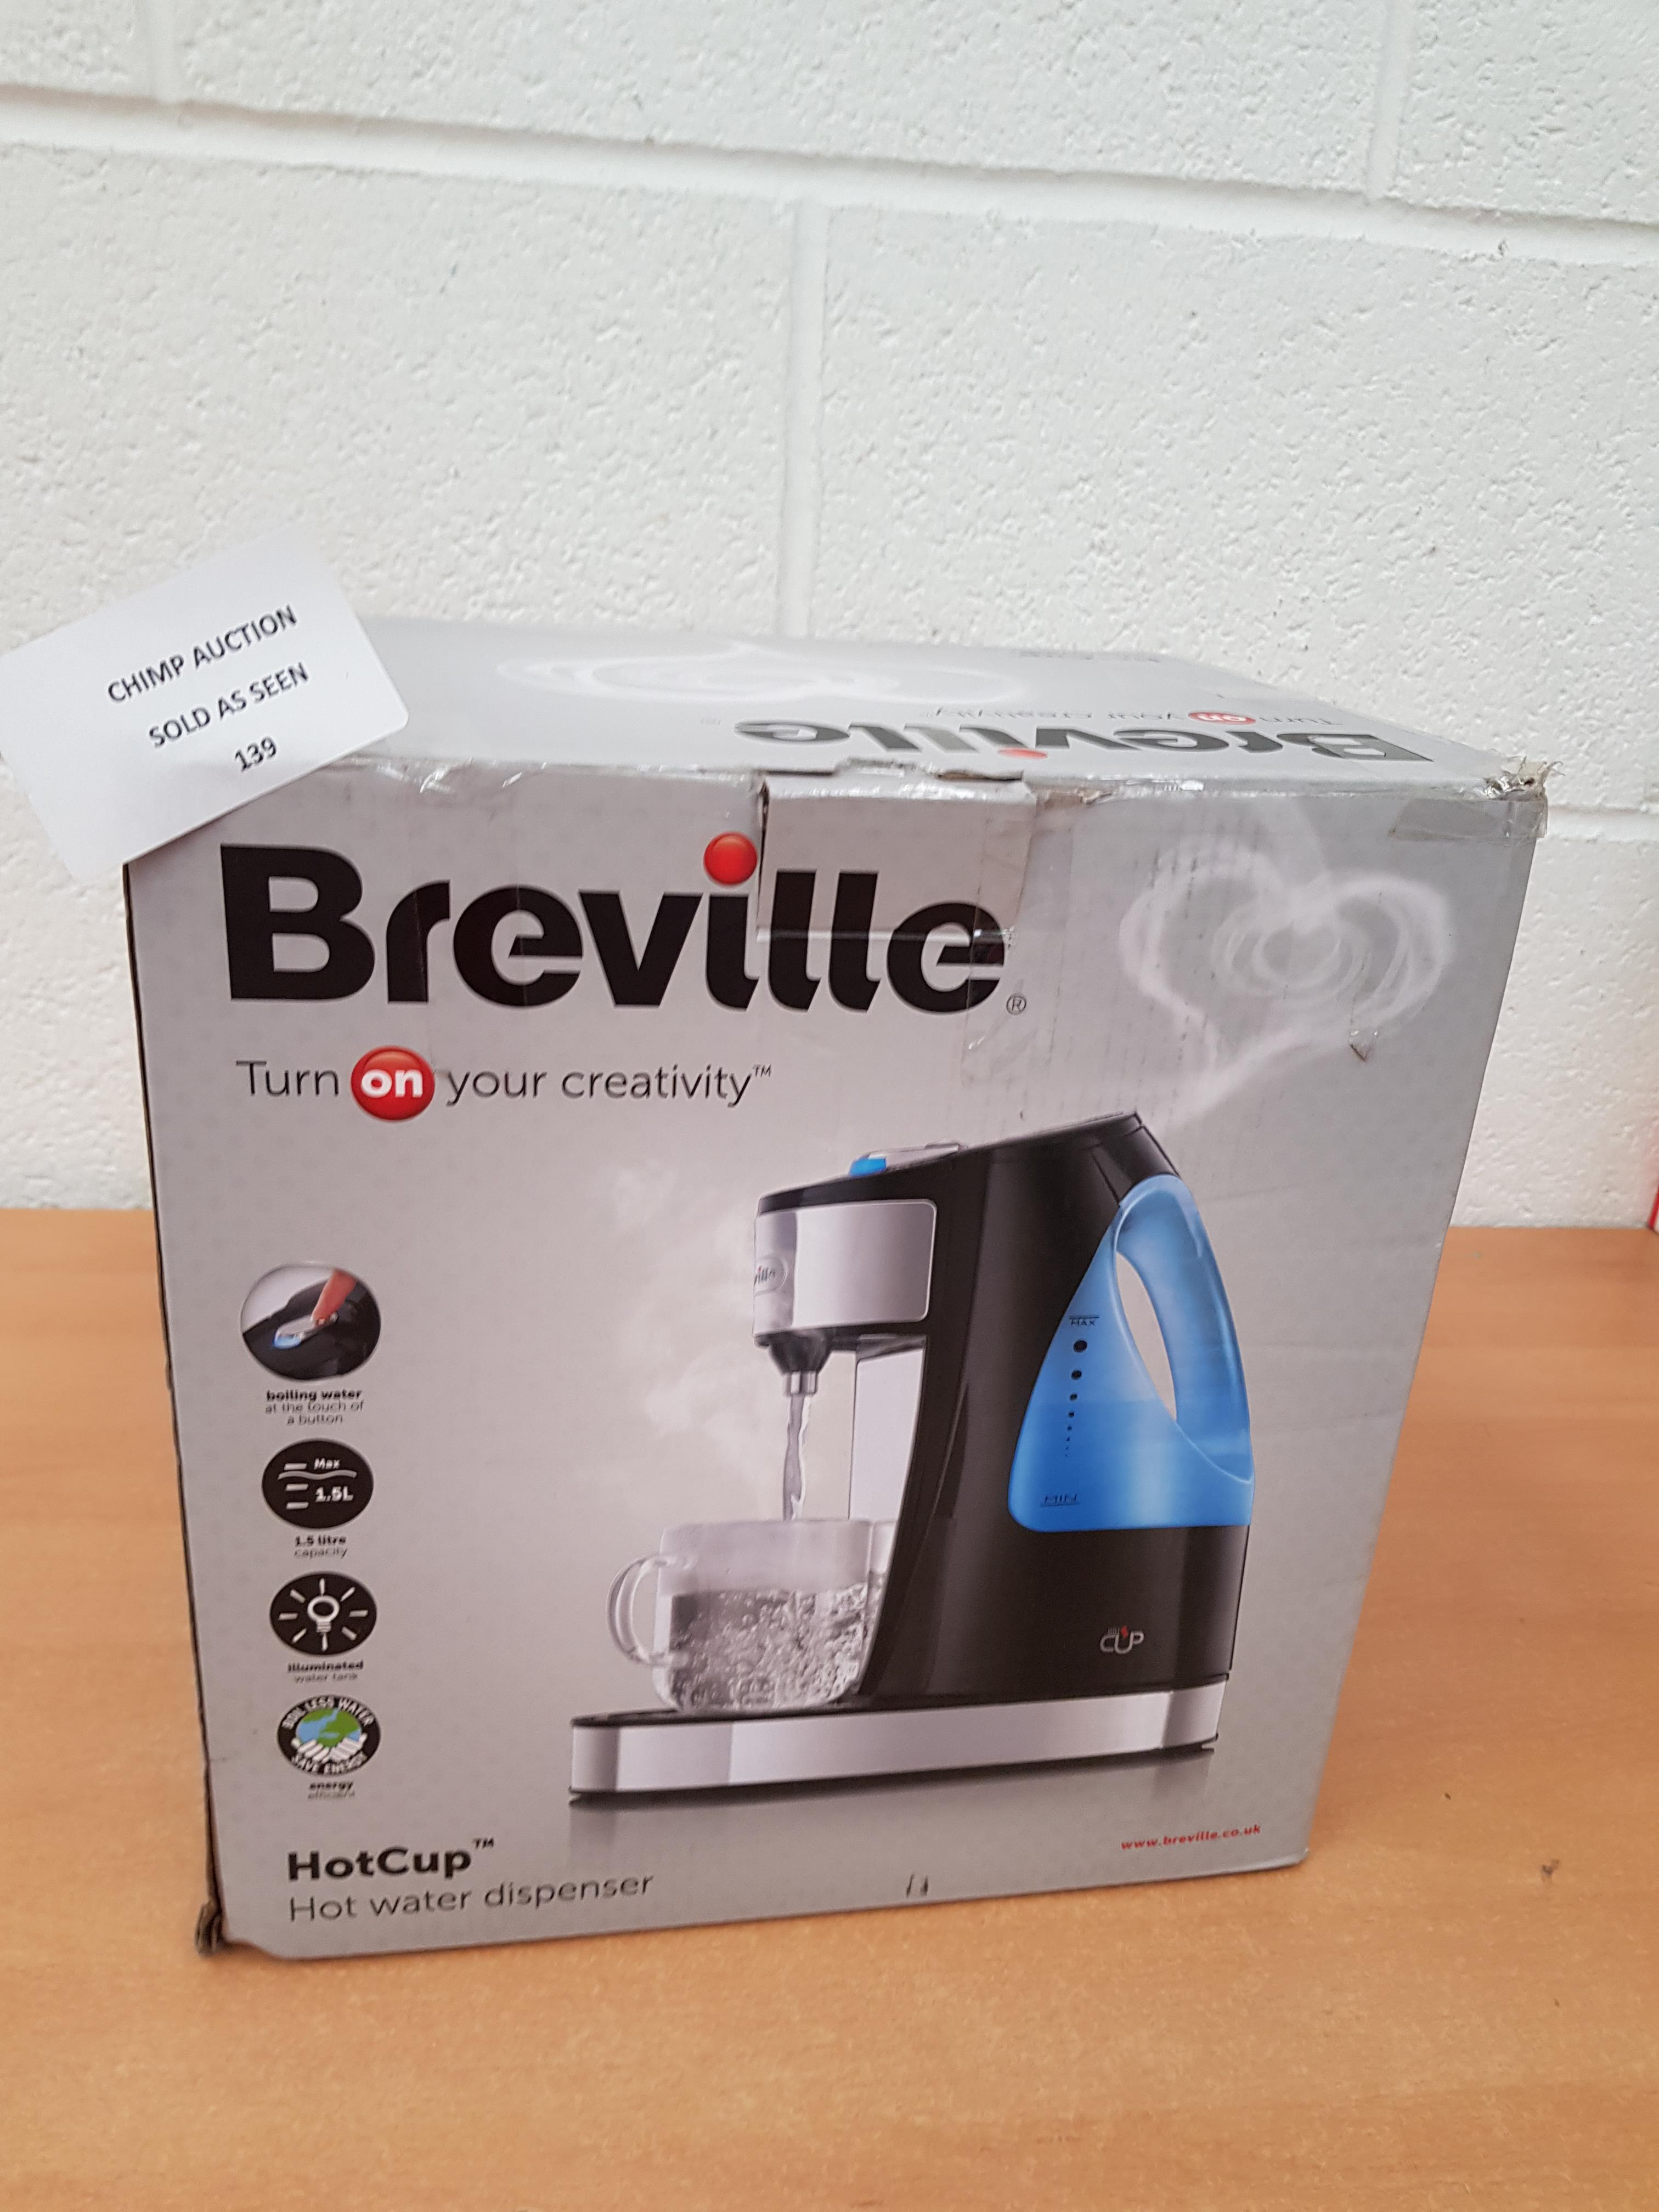 Lot 139 - Breville HotCup Hot water dispenser